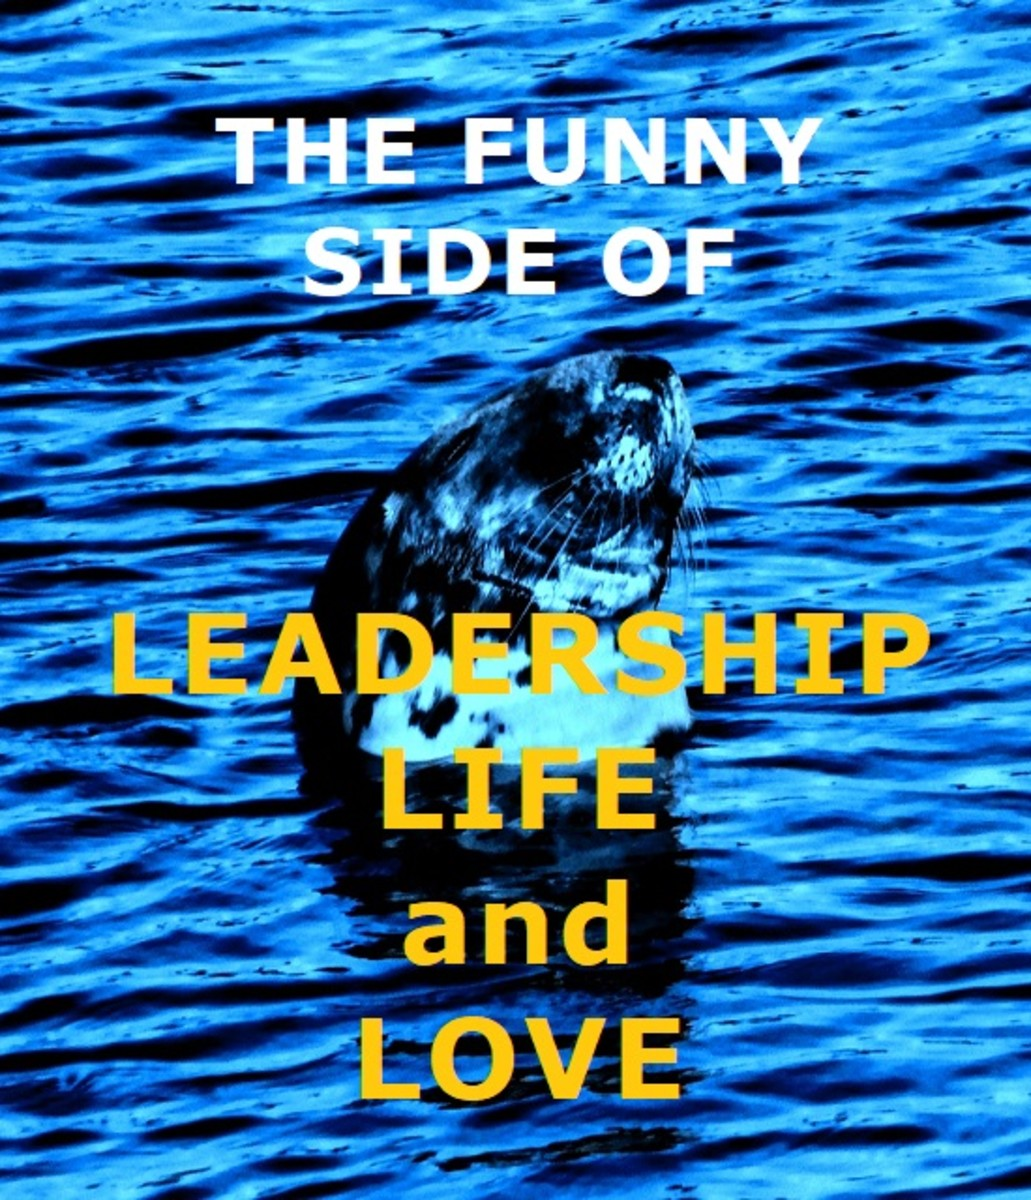 finest-quotes-the-best-of-the-best-best-funniest-leadership-life-and-love-quotes